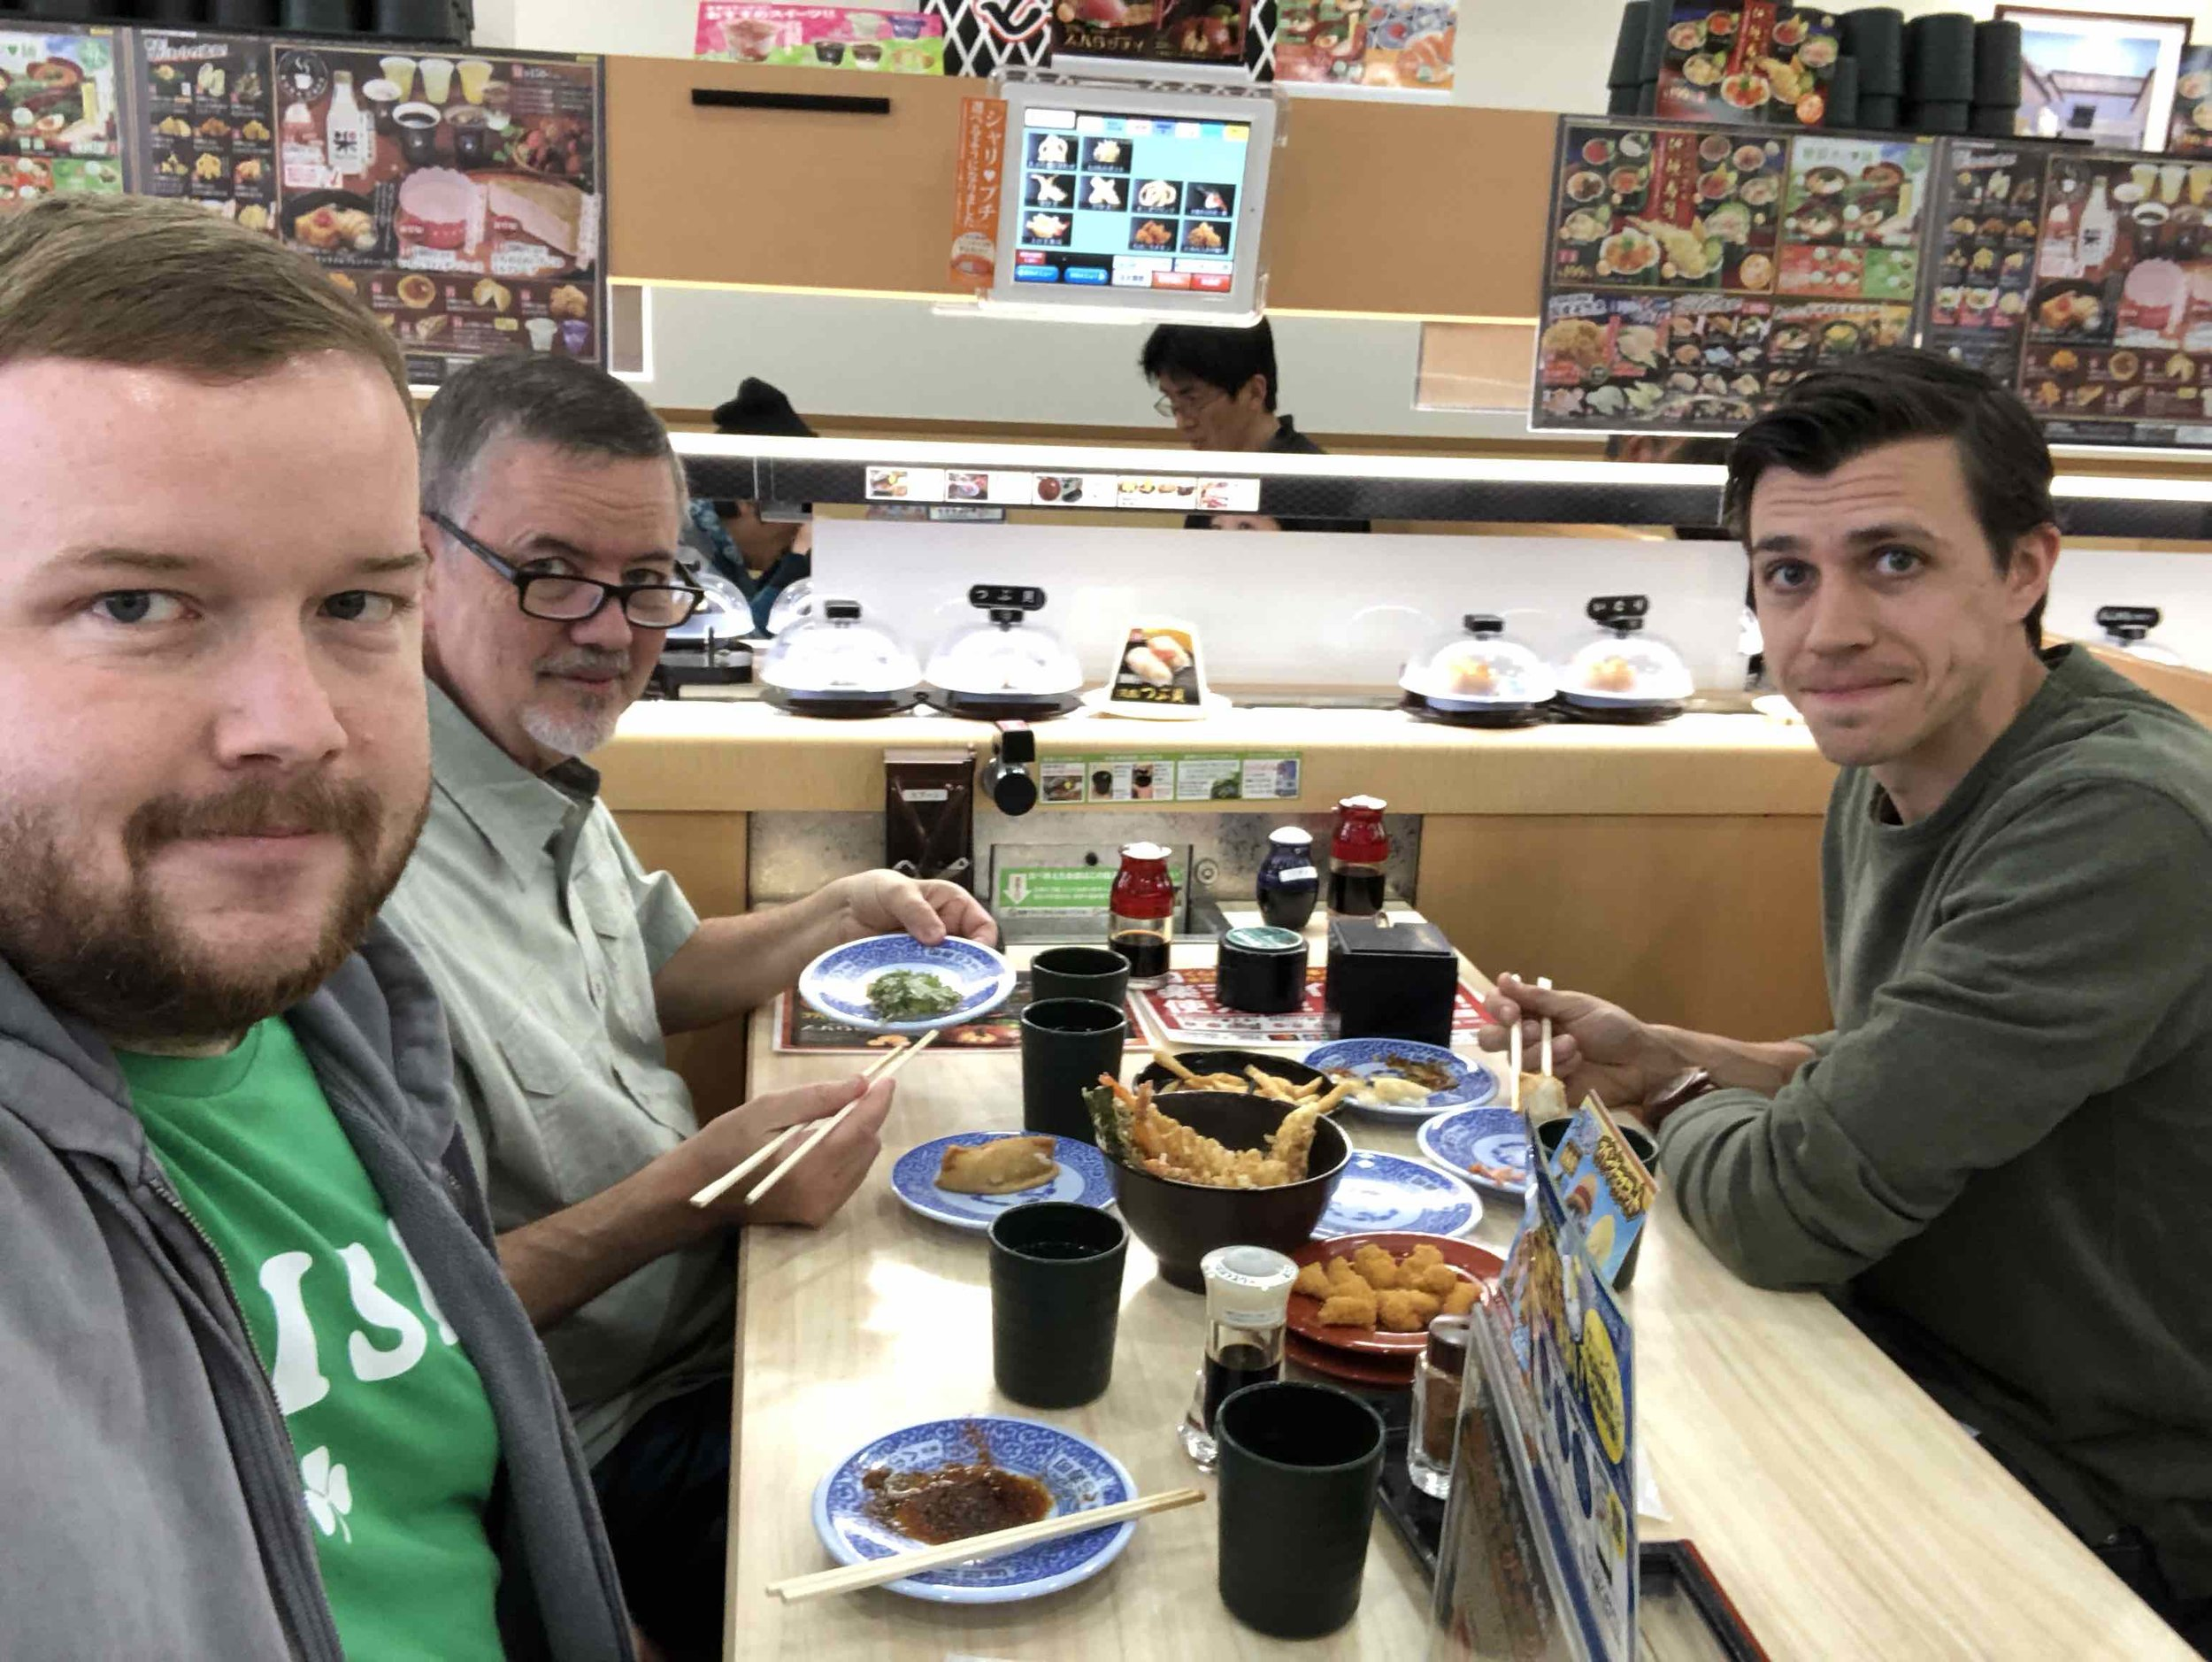 Conveyor belt sushi is one of the best parts about Japan!